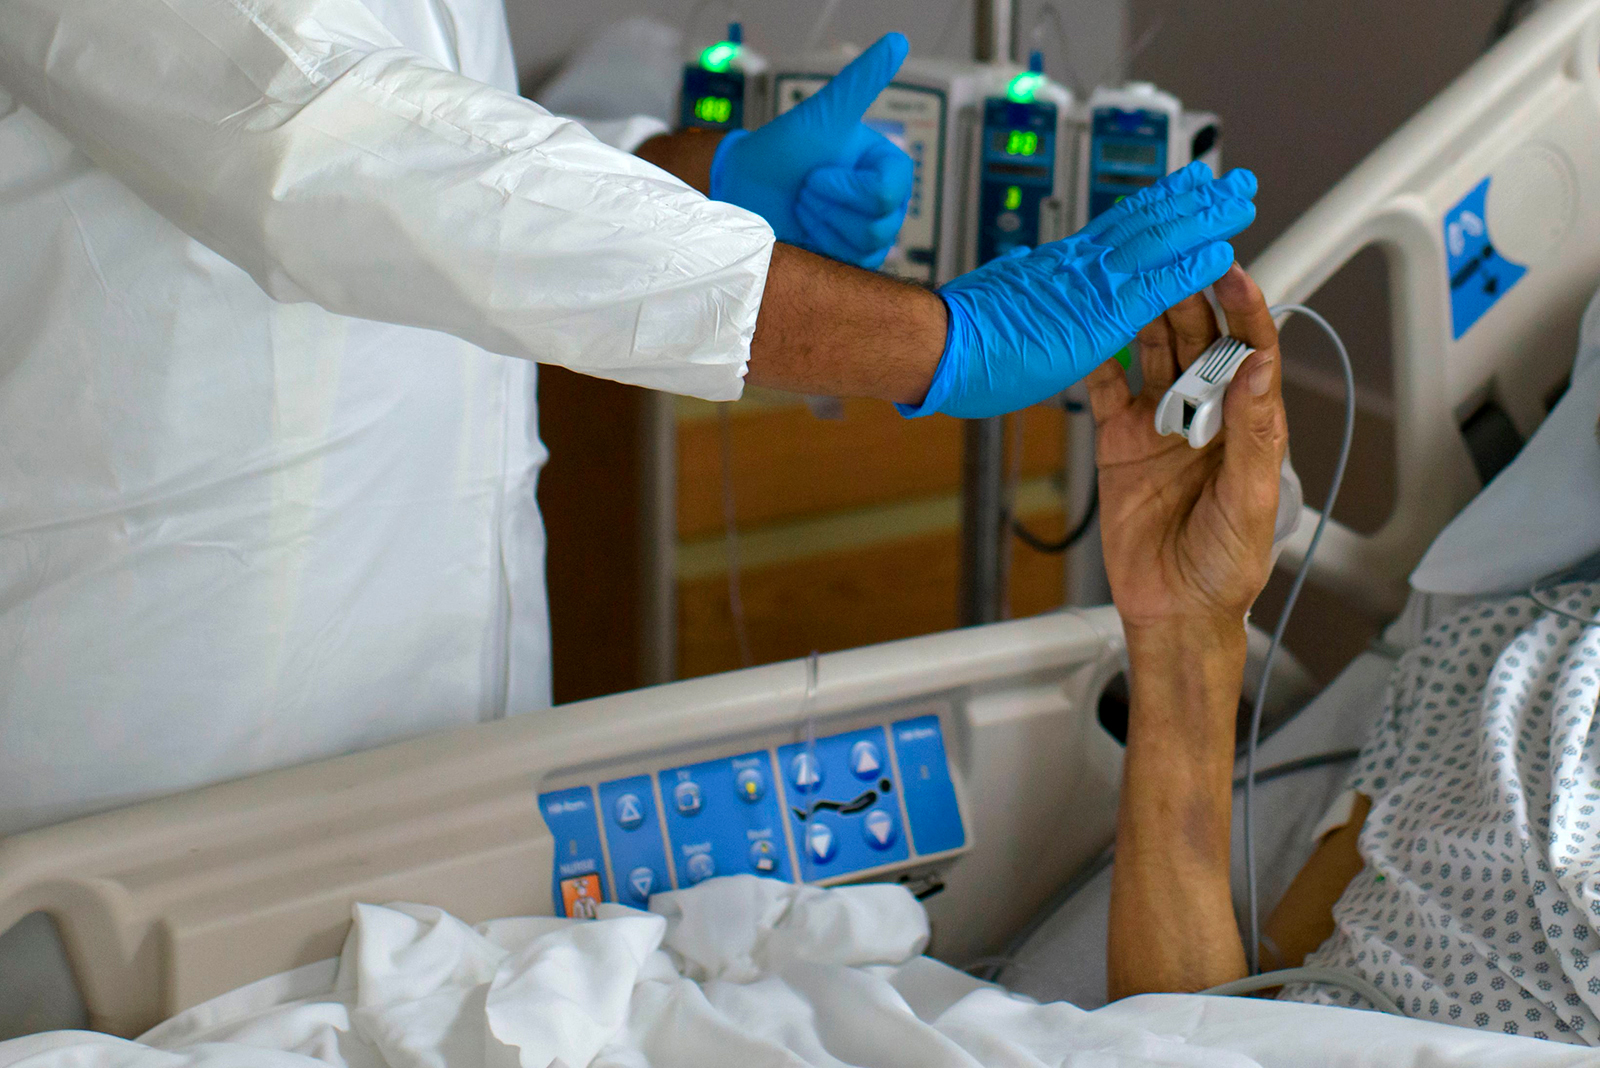 A healthcare worker high-fives a patient in the COVID-19 Unit at United Memorial Medical Center in Houston, Texas, July 2, 2020. (MARK FELIX/AFP via Getty Images)